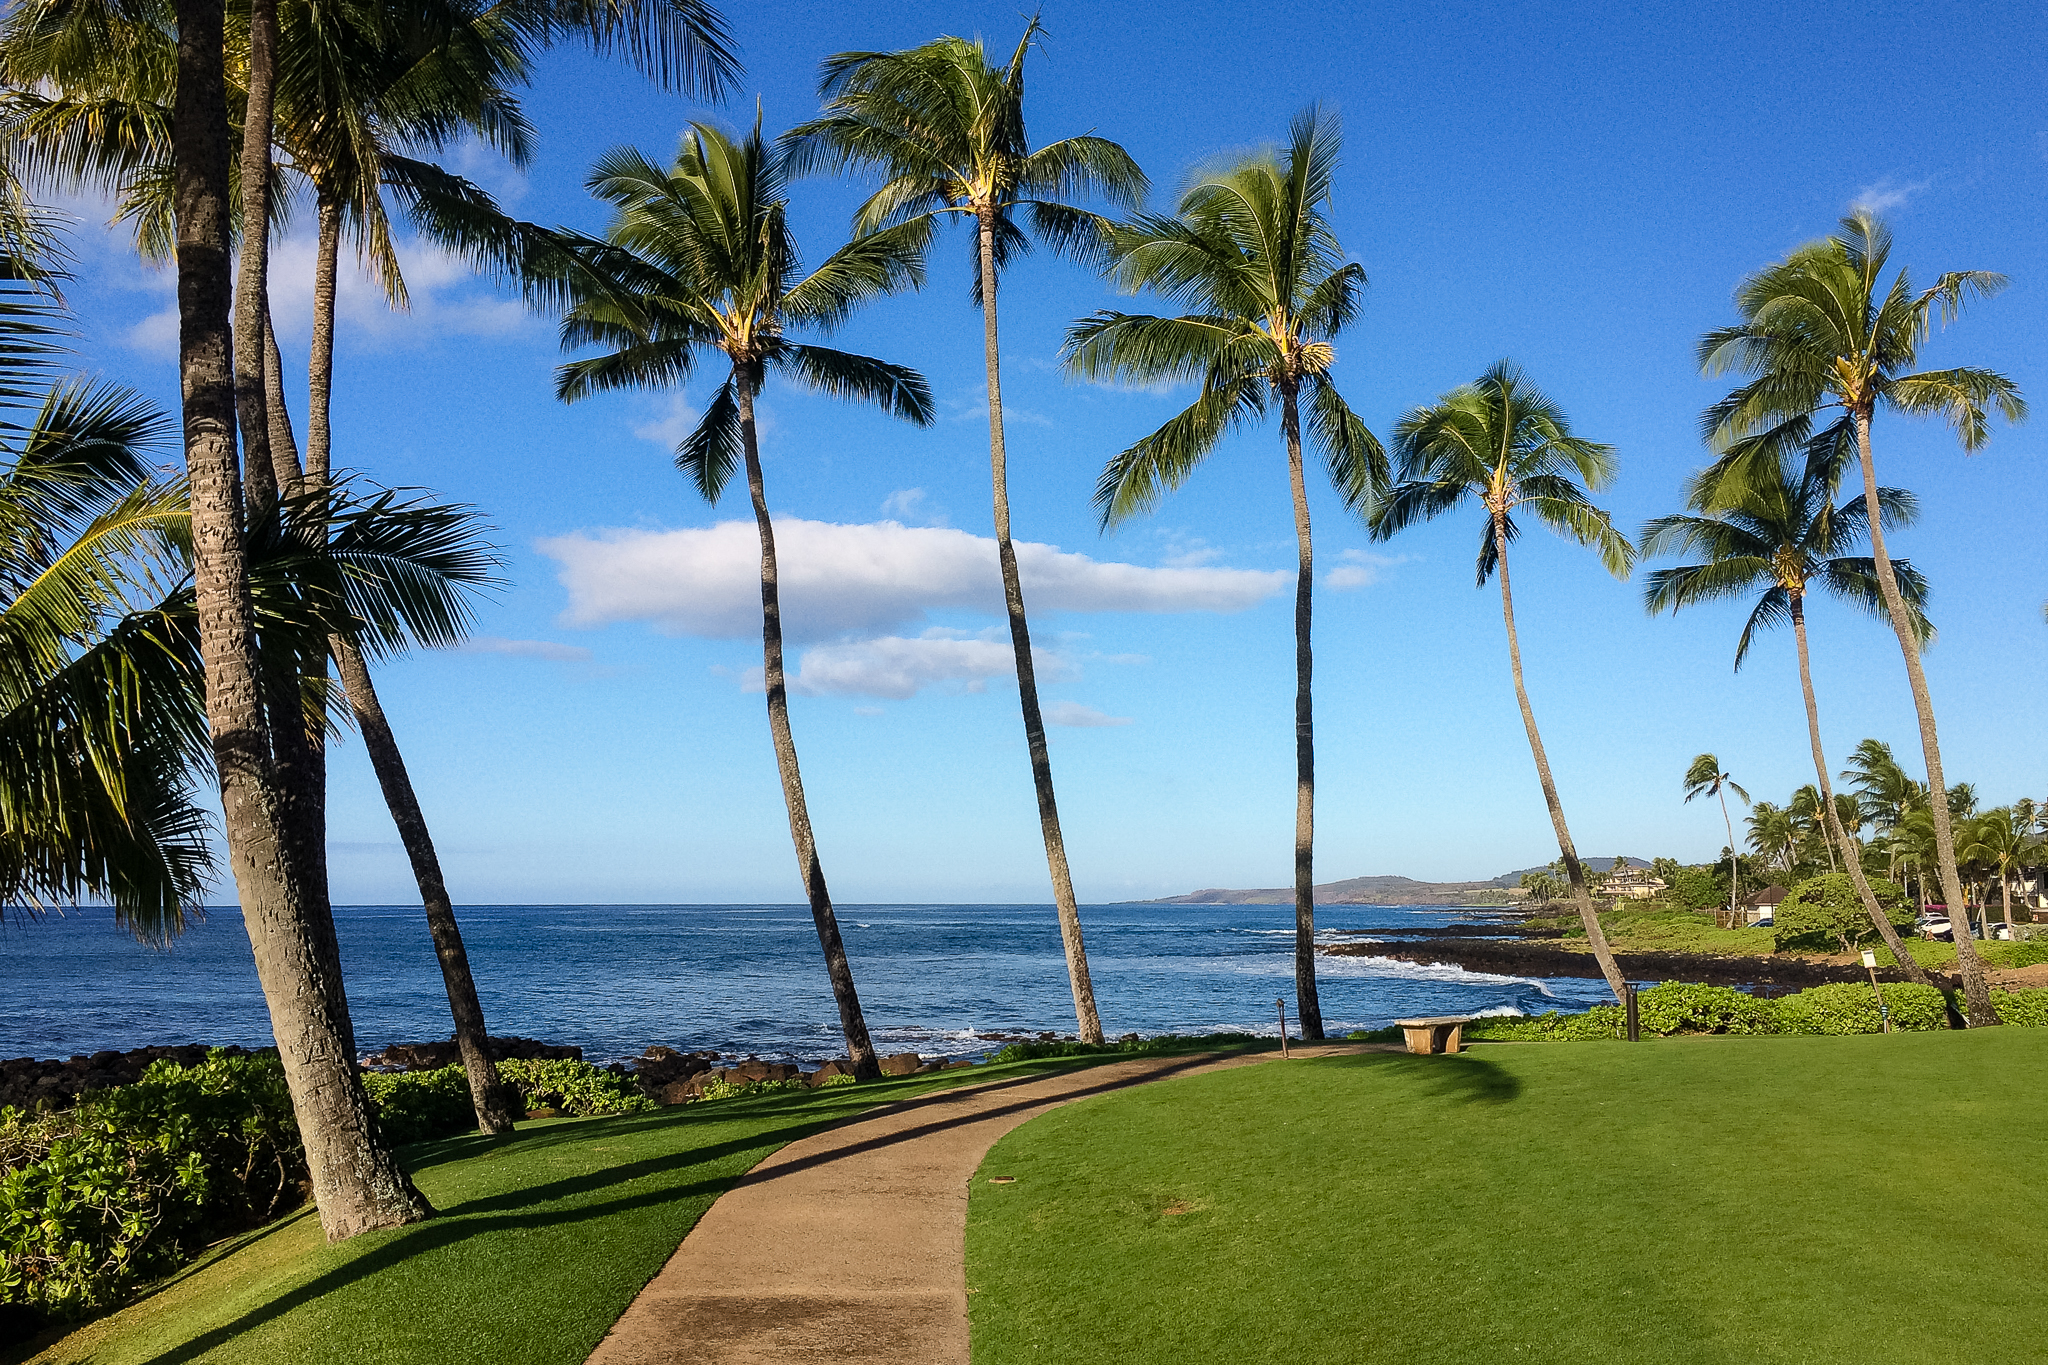 Hawaii-Blog-004.jpg